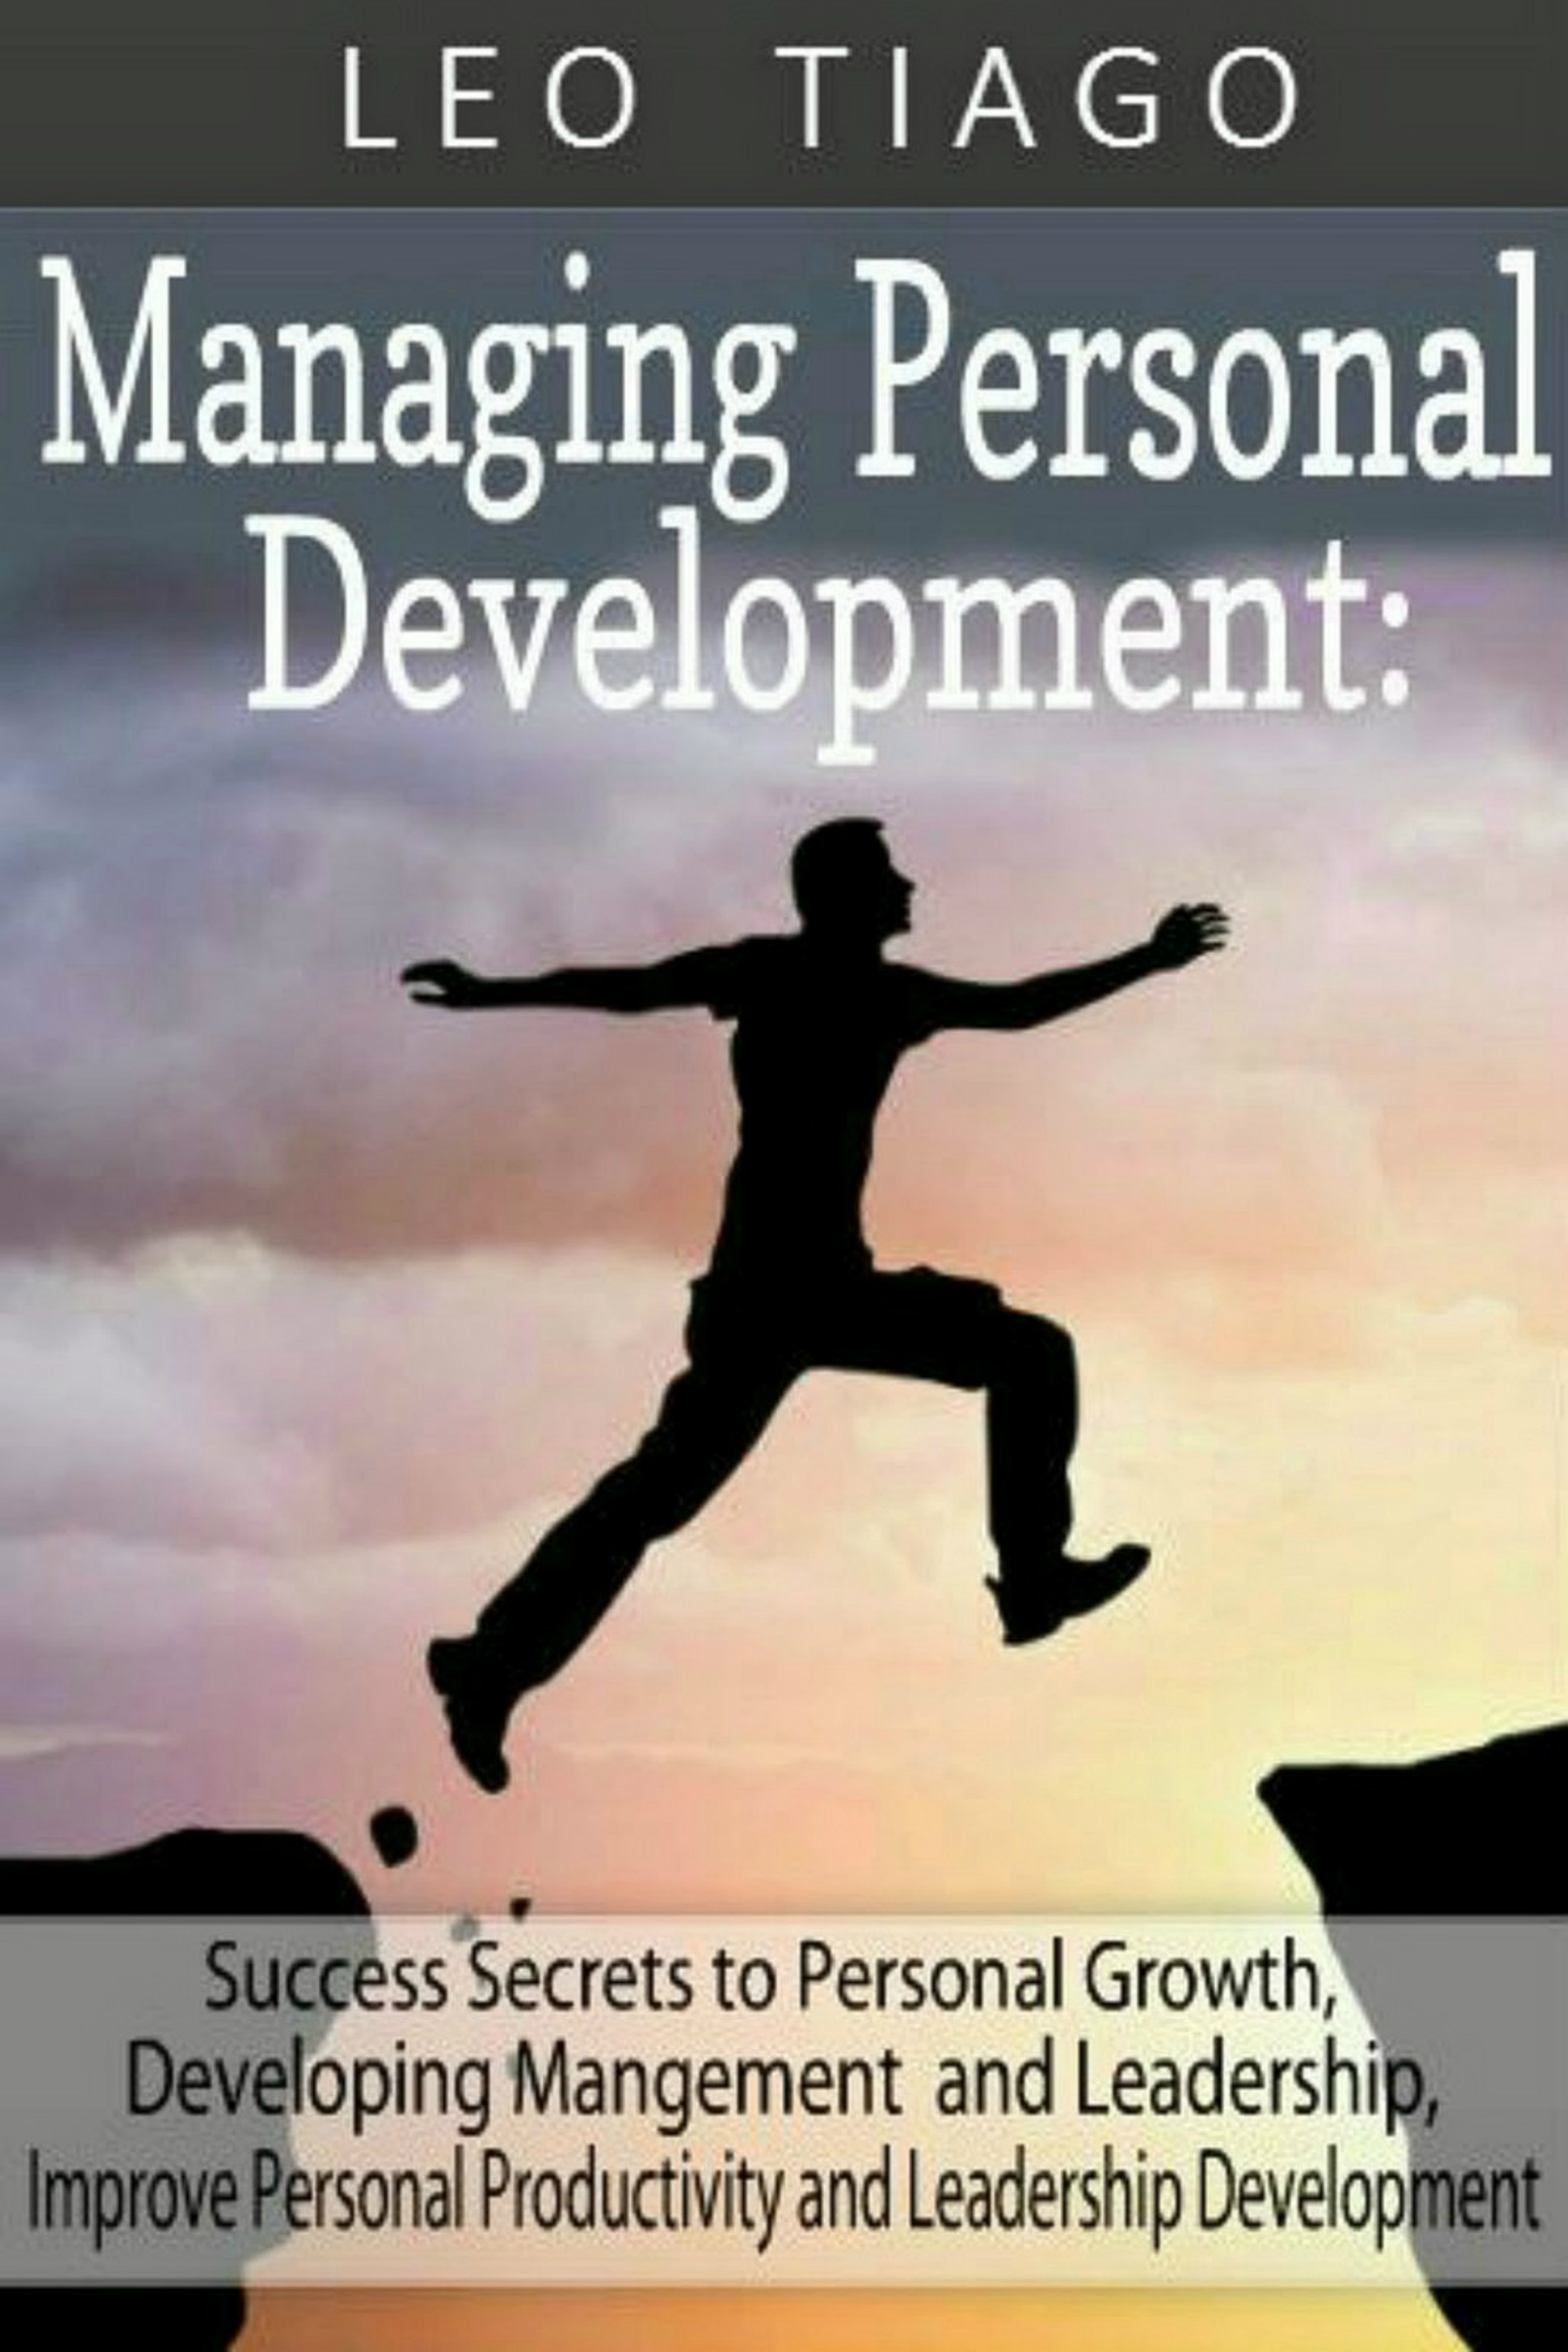 personal development as a manager and leader But training and leadership development play a key role seek out support, mentorship, and new opportunities to stretch yourself as you progress from an individual contributor to a manager and leader, continuing to grow will be key to how you perform.